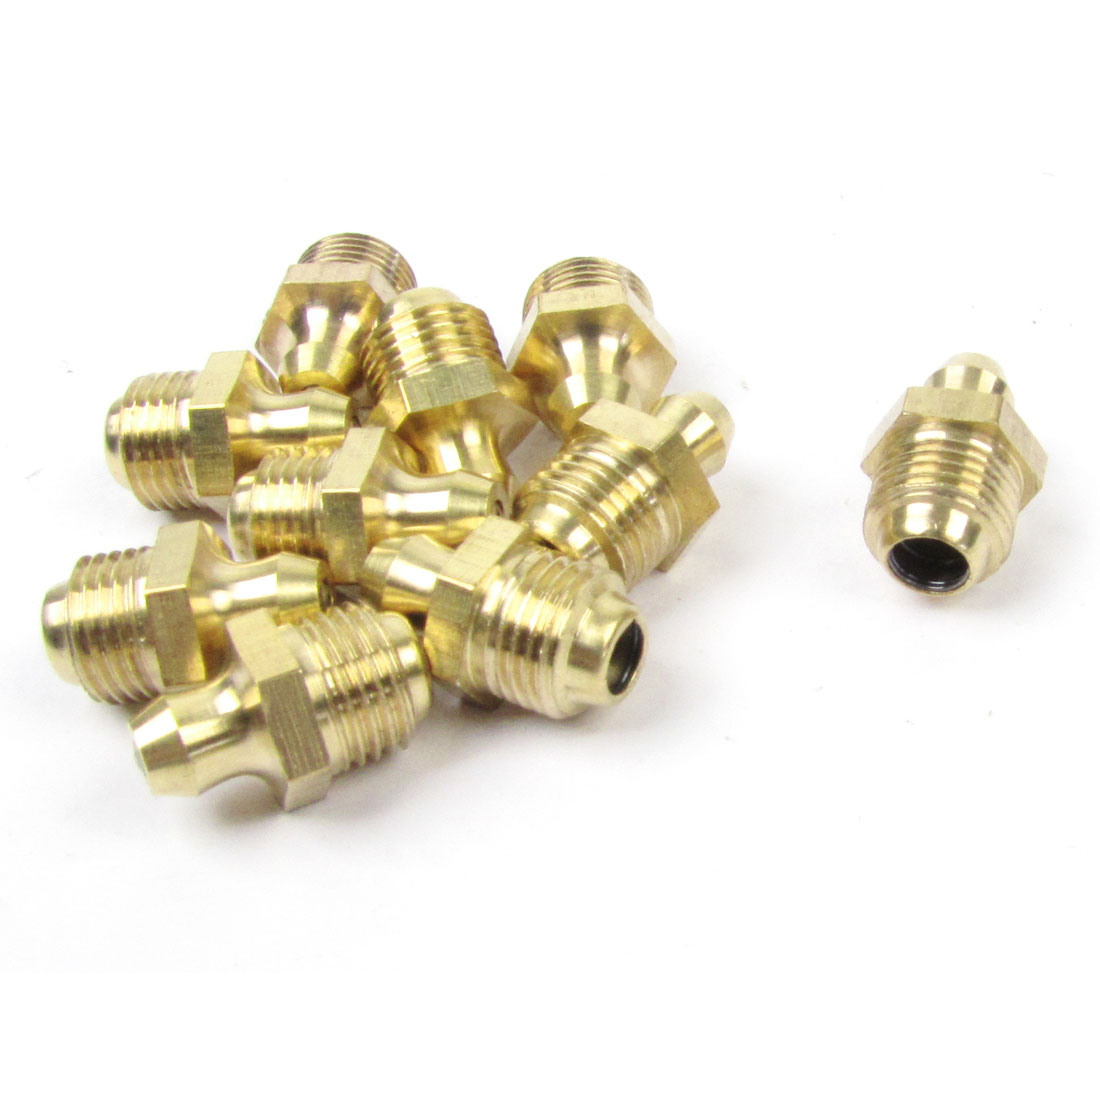 10 Pcs Gold Tone 10mm Dia Male Thread Straight Grease Nipples Fittings